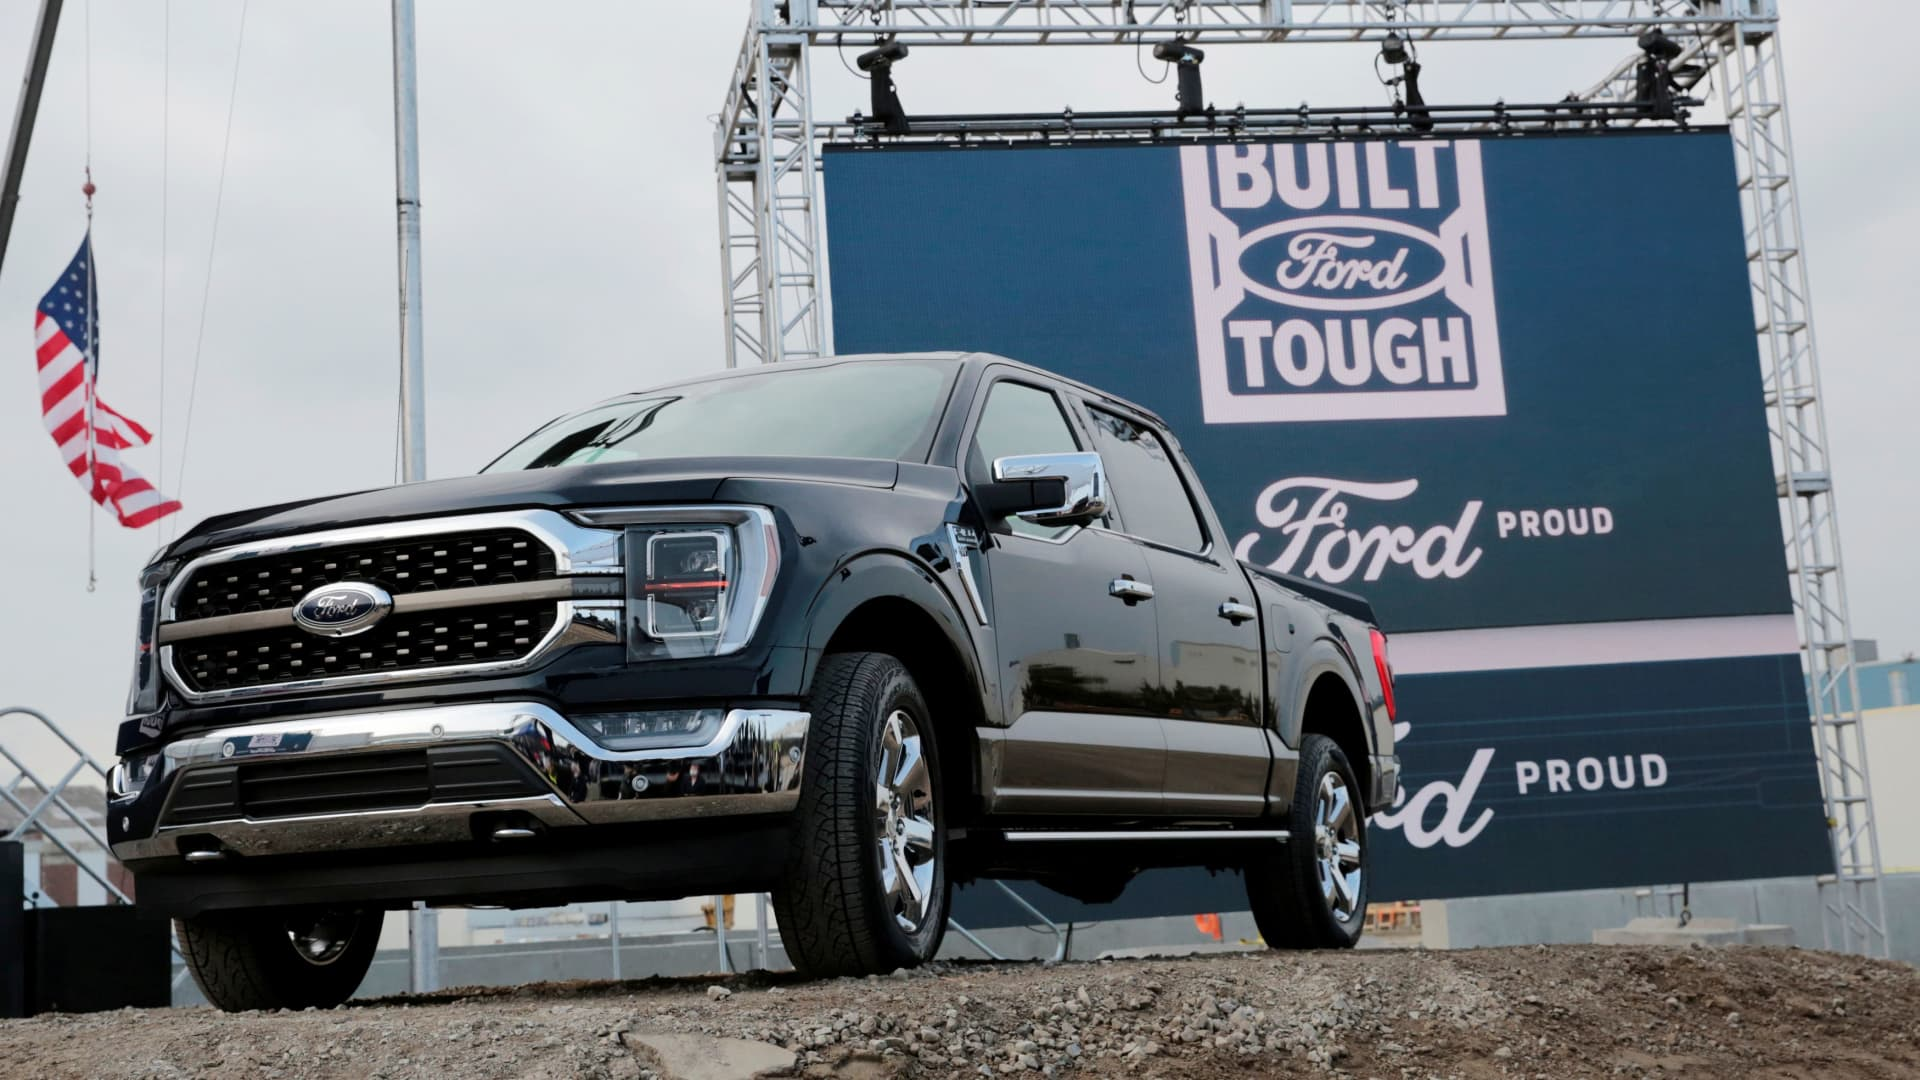 Ford Motor Co. displays a new 2021 Ford F-150 pickup truck at the Rouge Complex in Dearborn, Michigan, September 17, 2020.